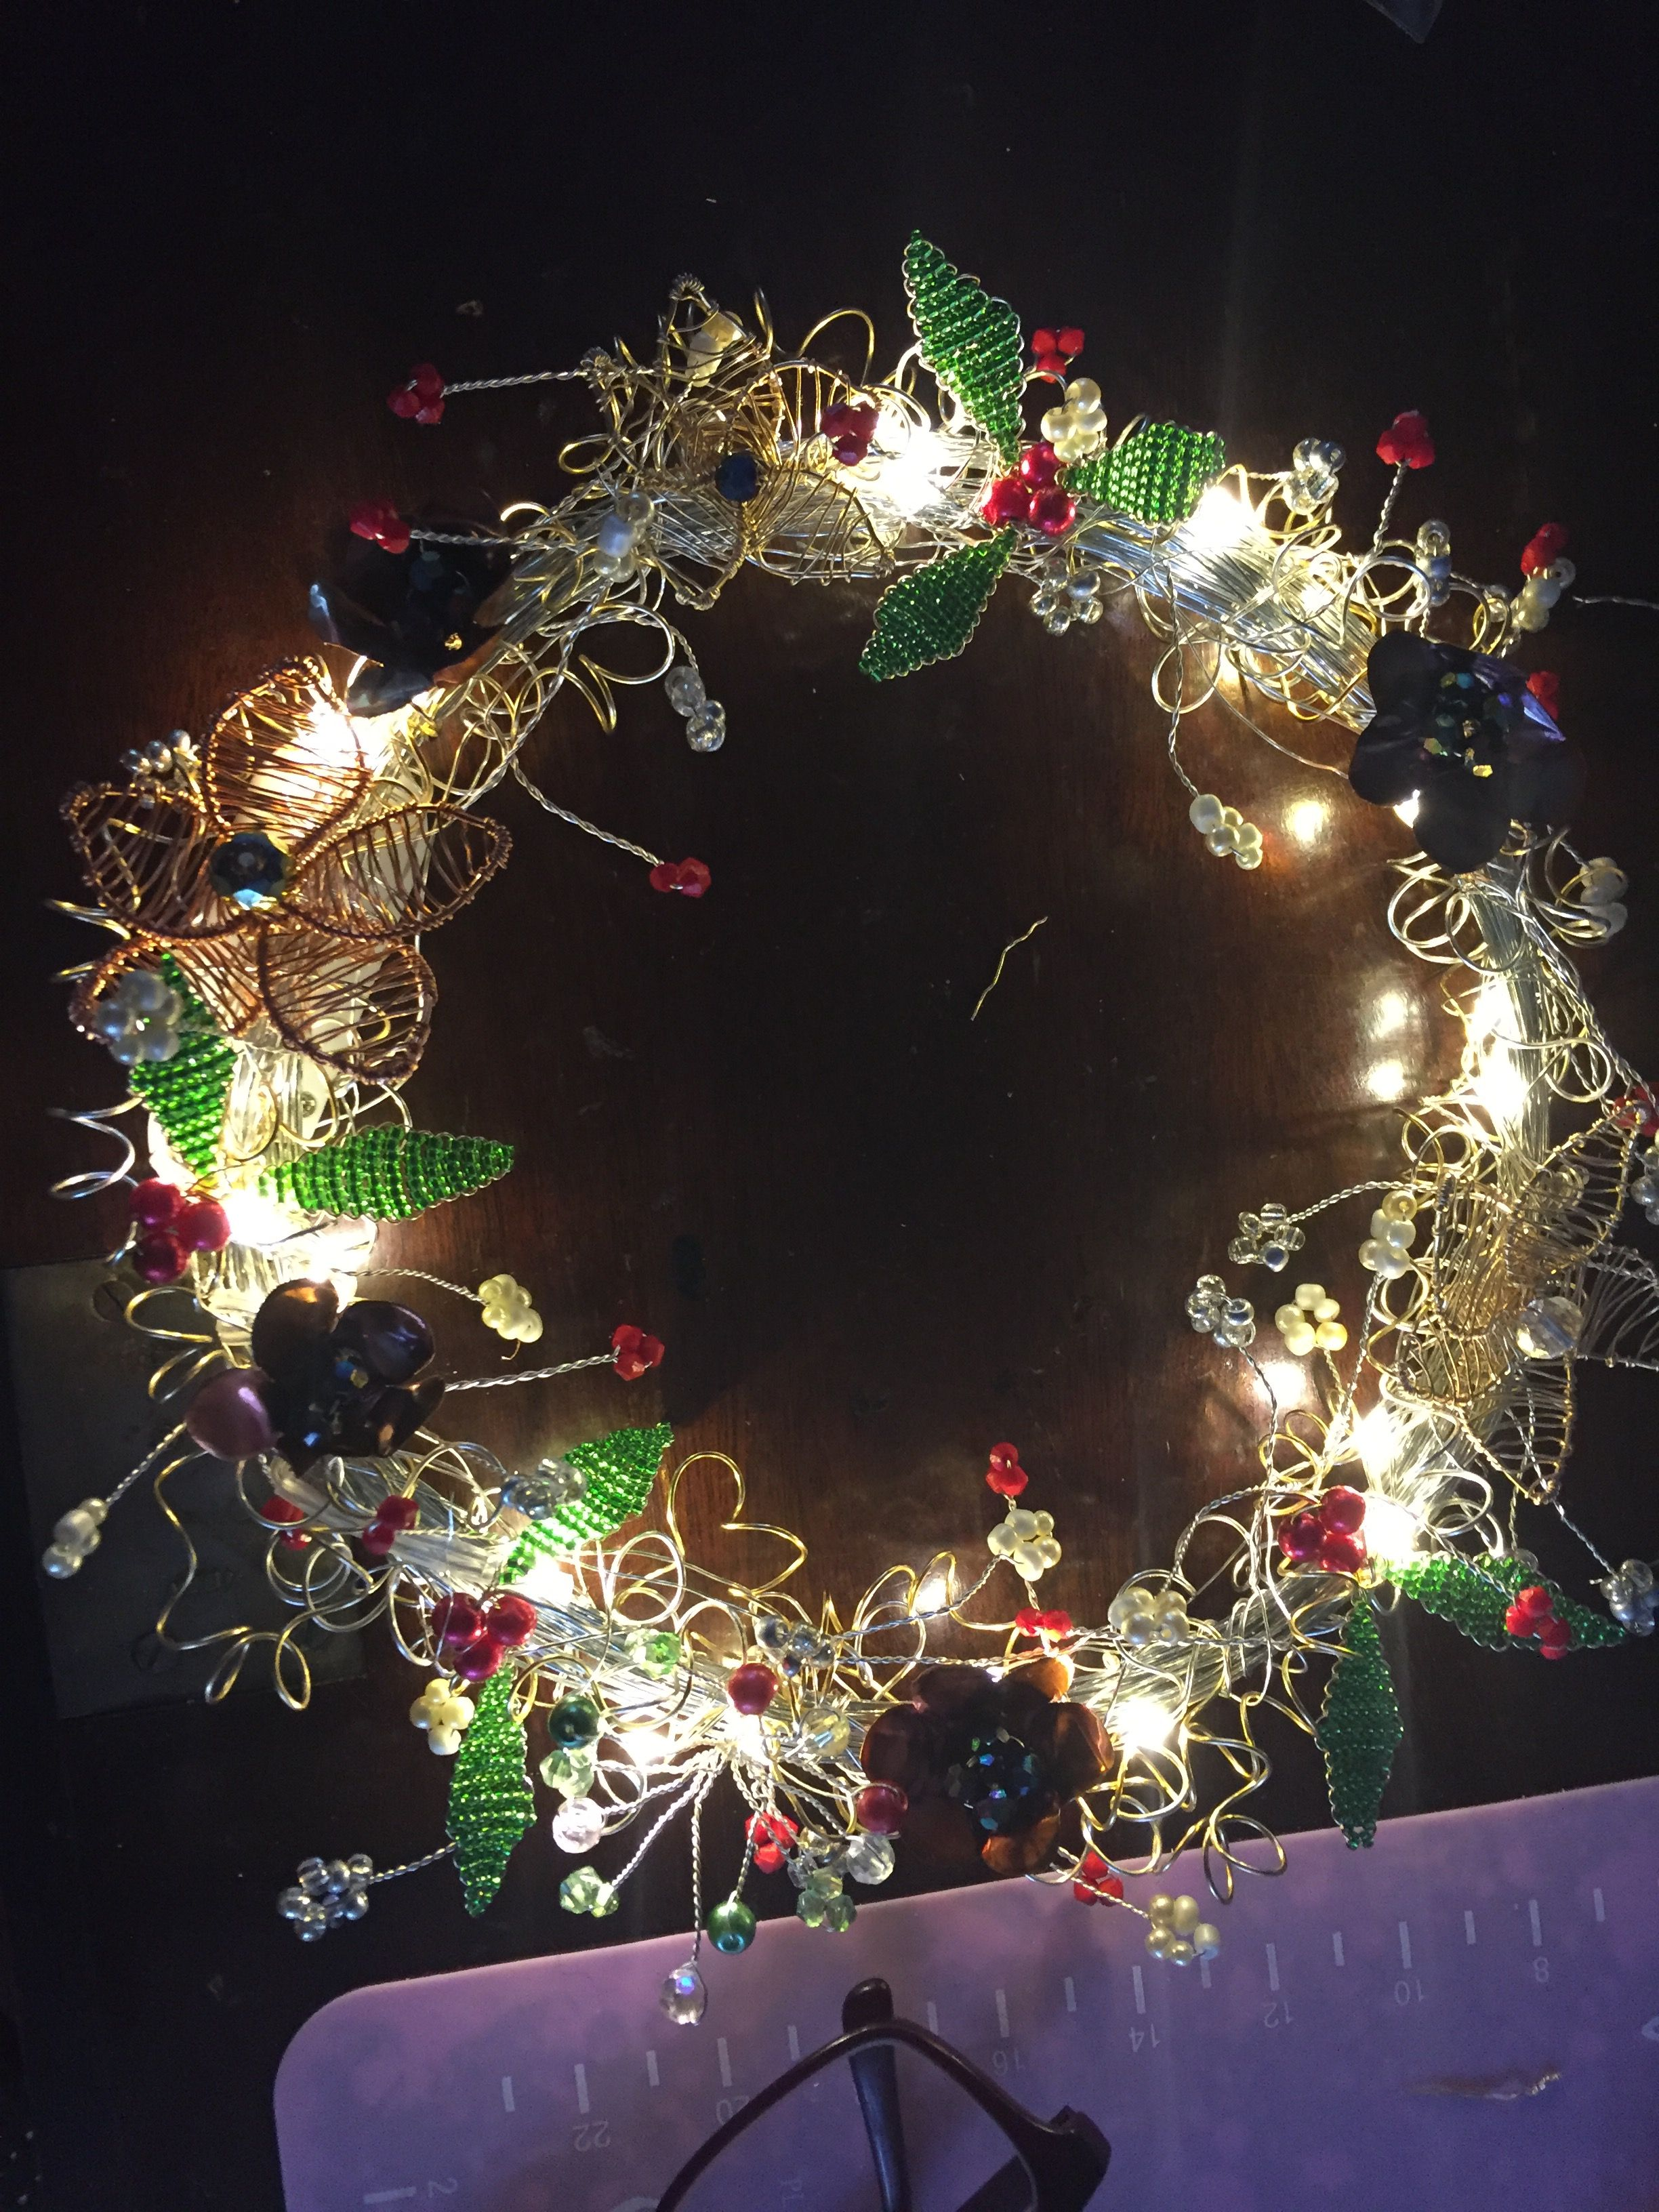 All handmade wire woven Xmas wreath. All components hand crafted ...